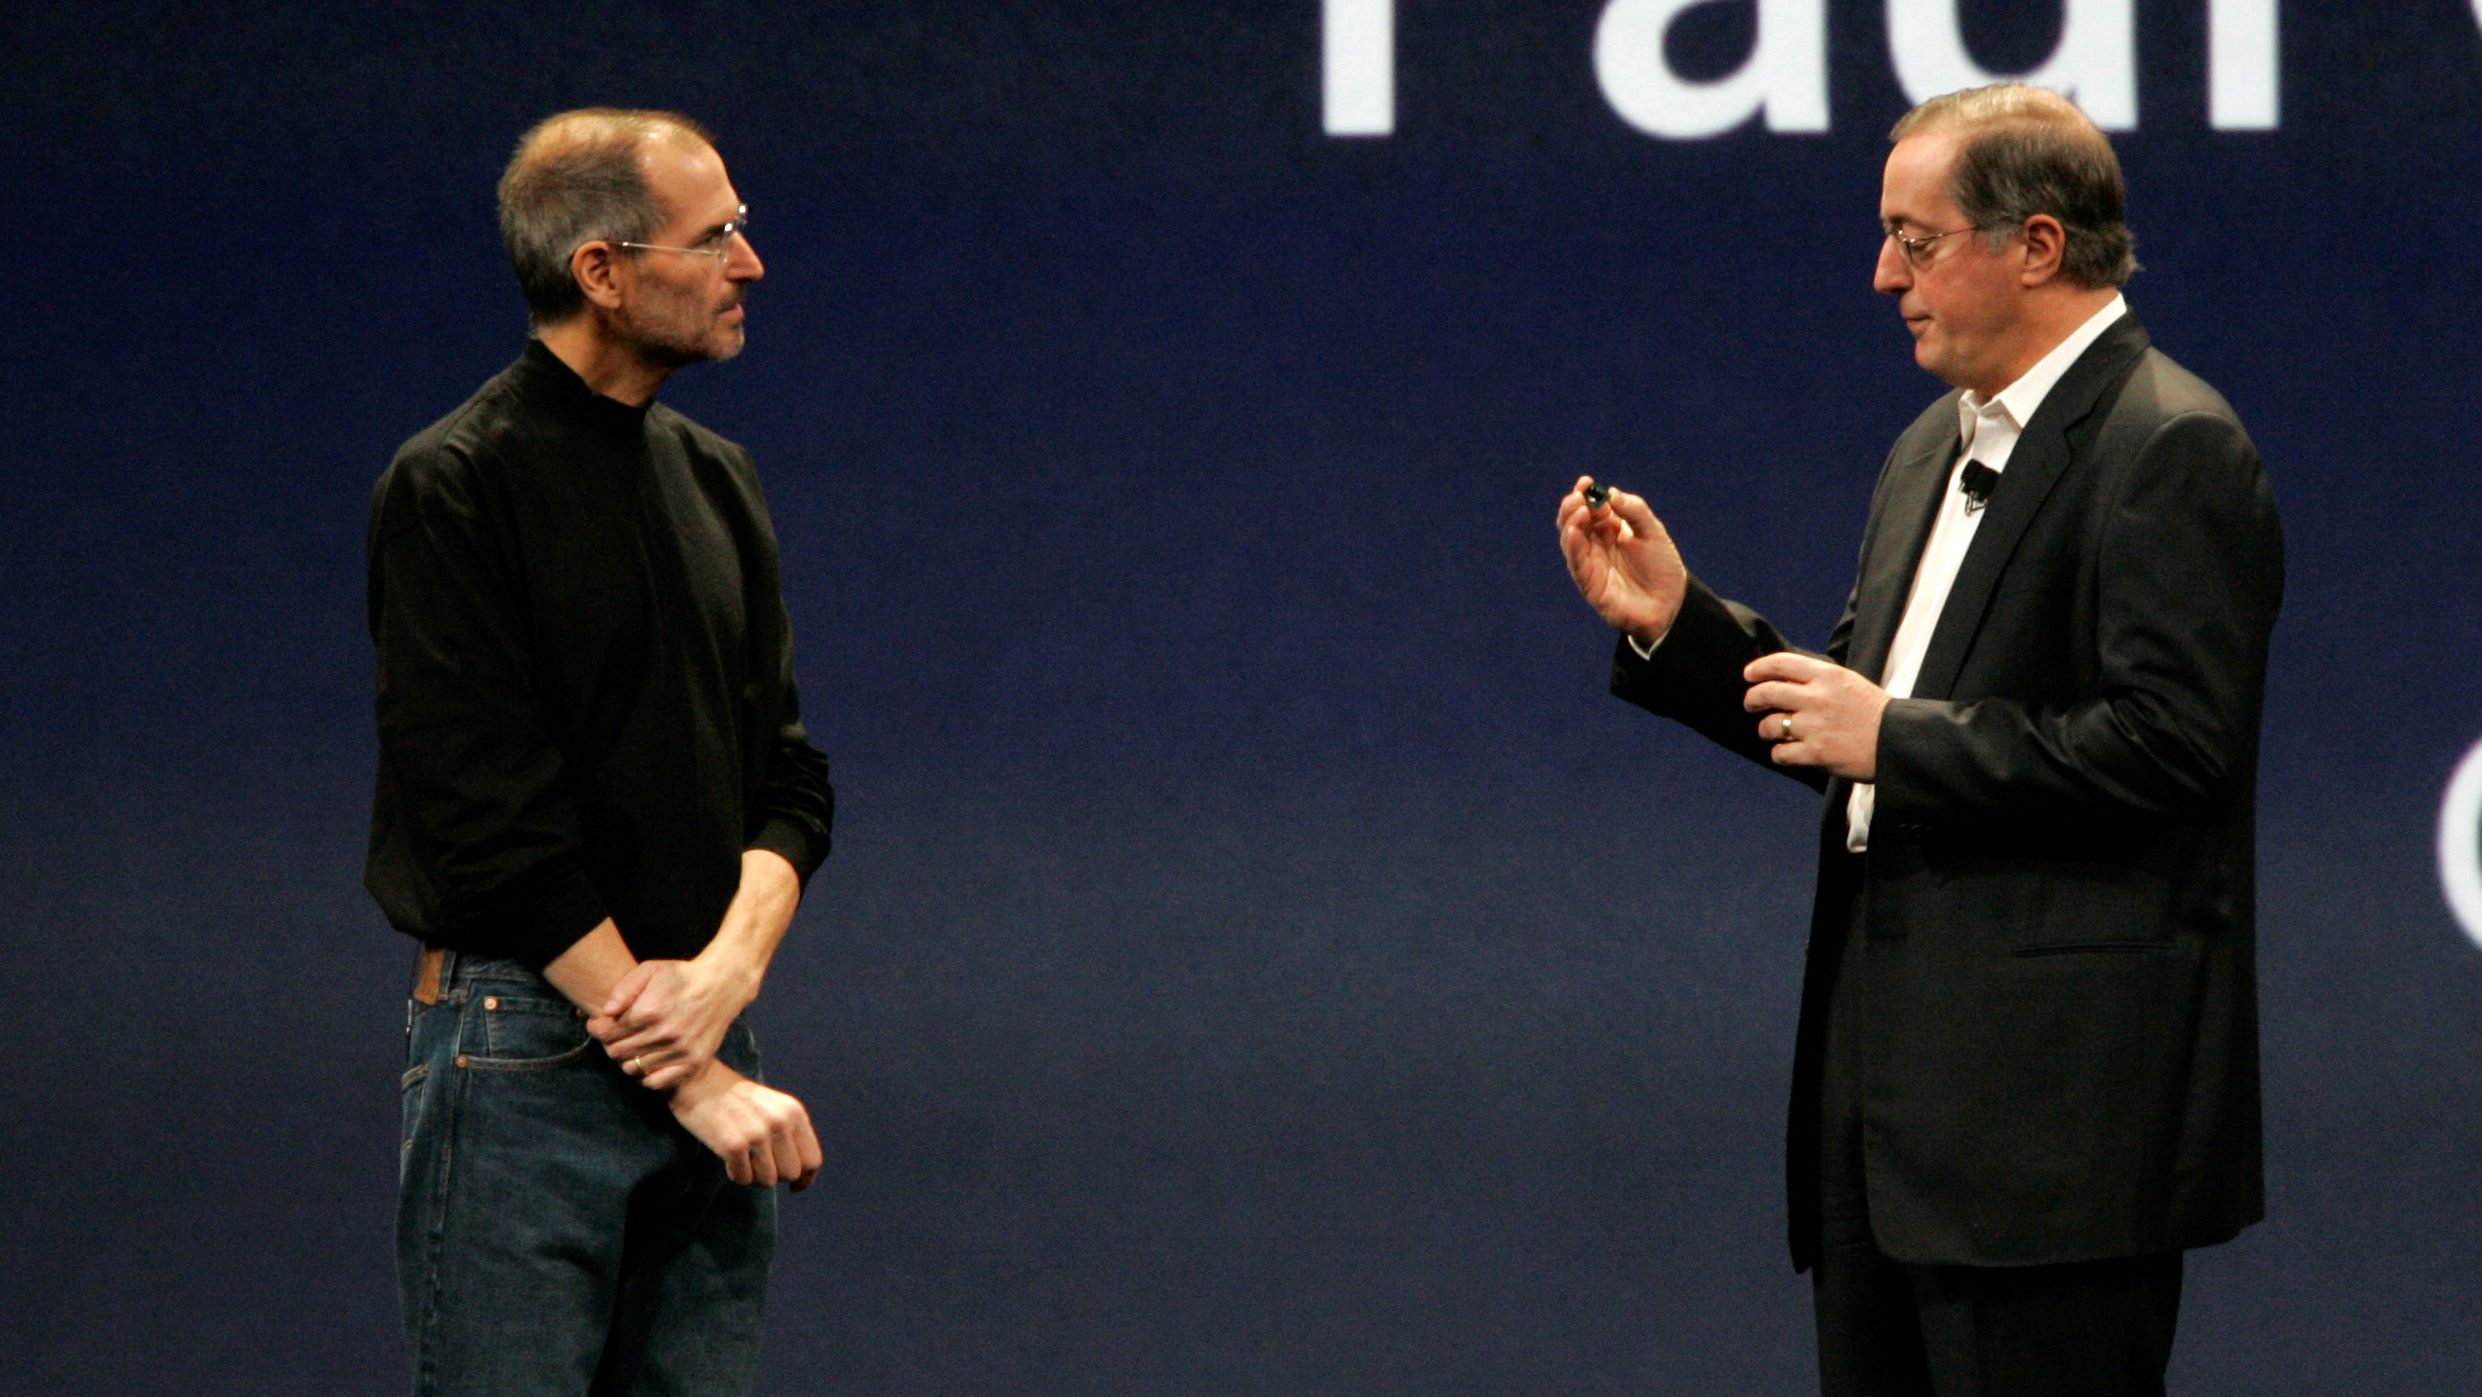 Apple CEO Steve Jobs, left, talks to CEO of Intel Paul Otellini during the keynote address at Apple MacWorld Conference in San Francisco, Tuesday, Jan. 15, 2008. (AP Photo/Jeff Chiu)